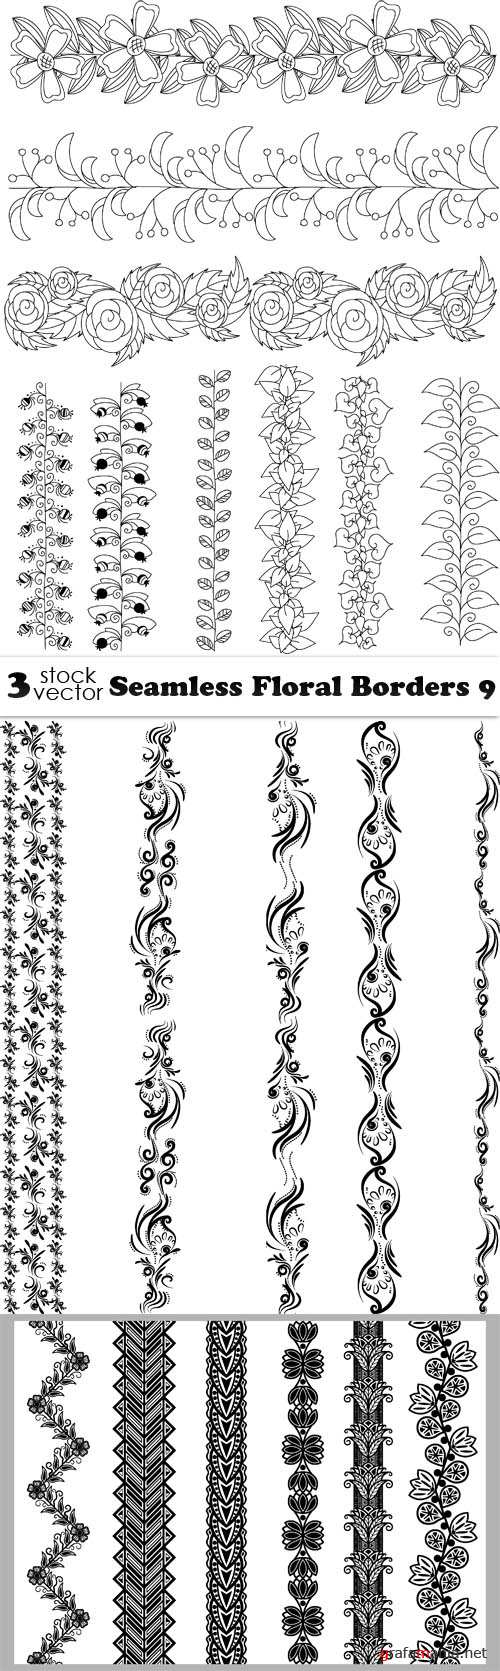 Vectors - Seamless Floral Borders 9